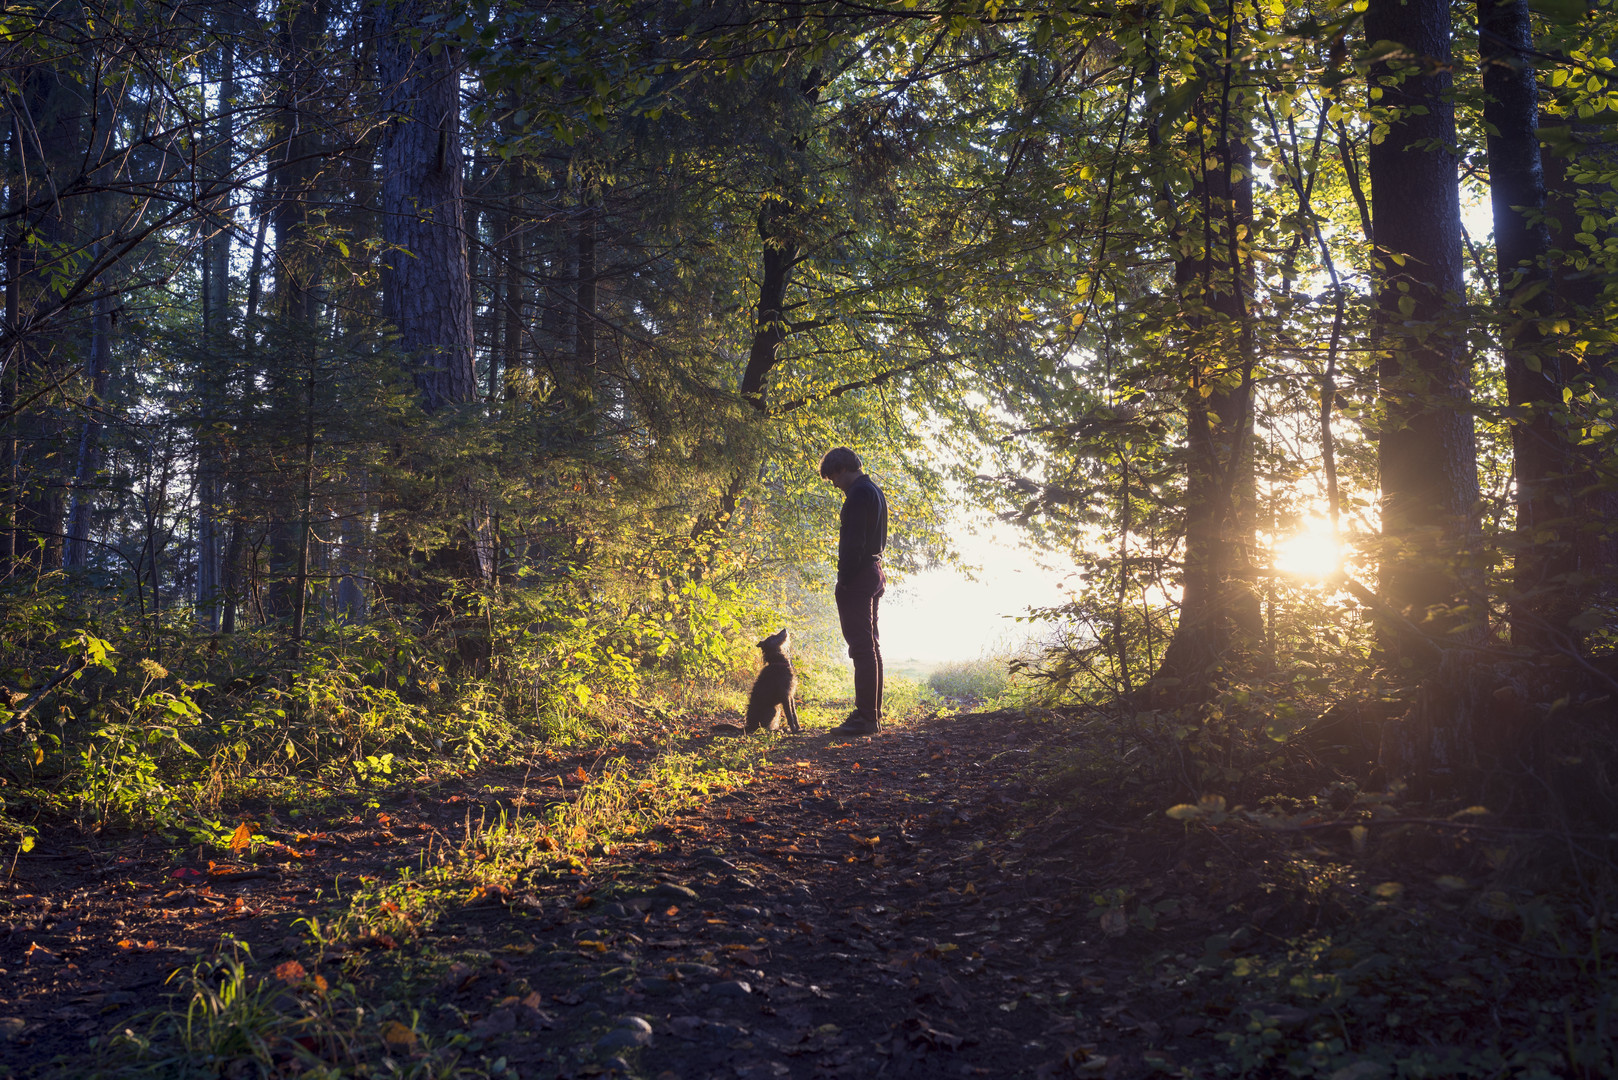 Man walking his dog in the woods standin